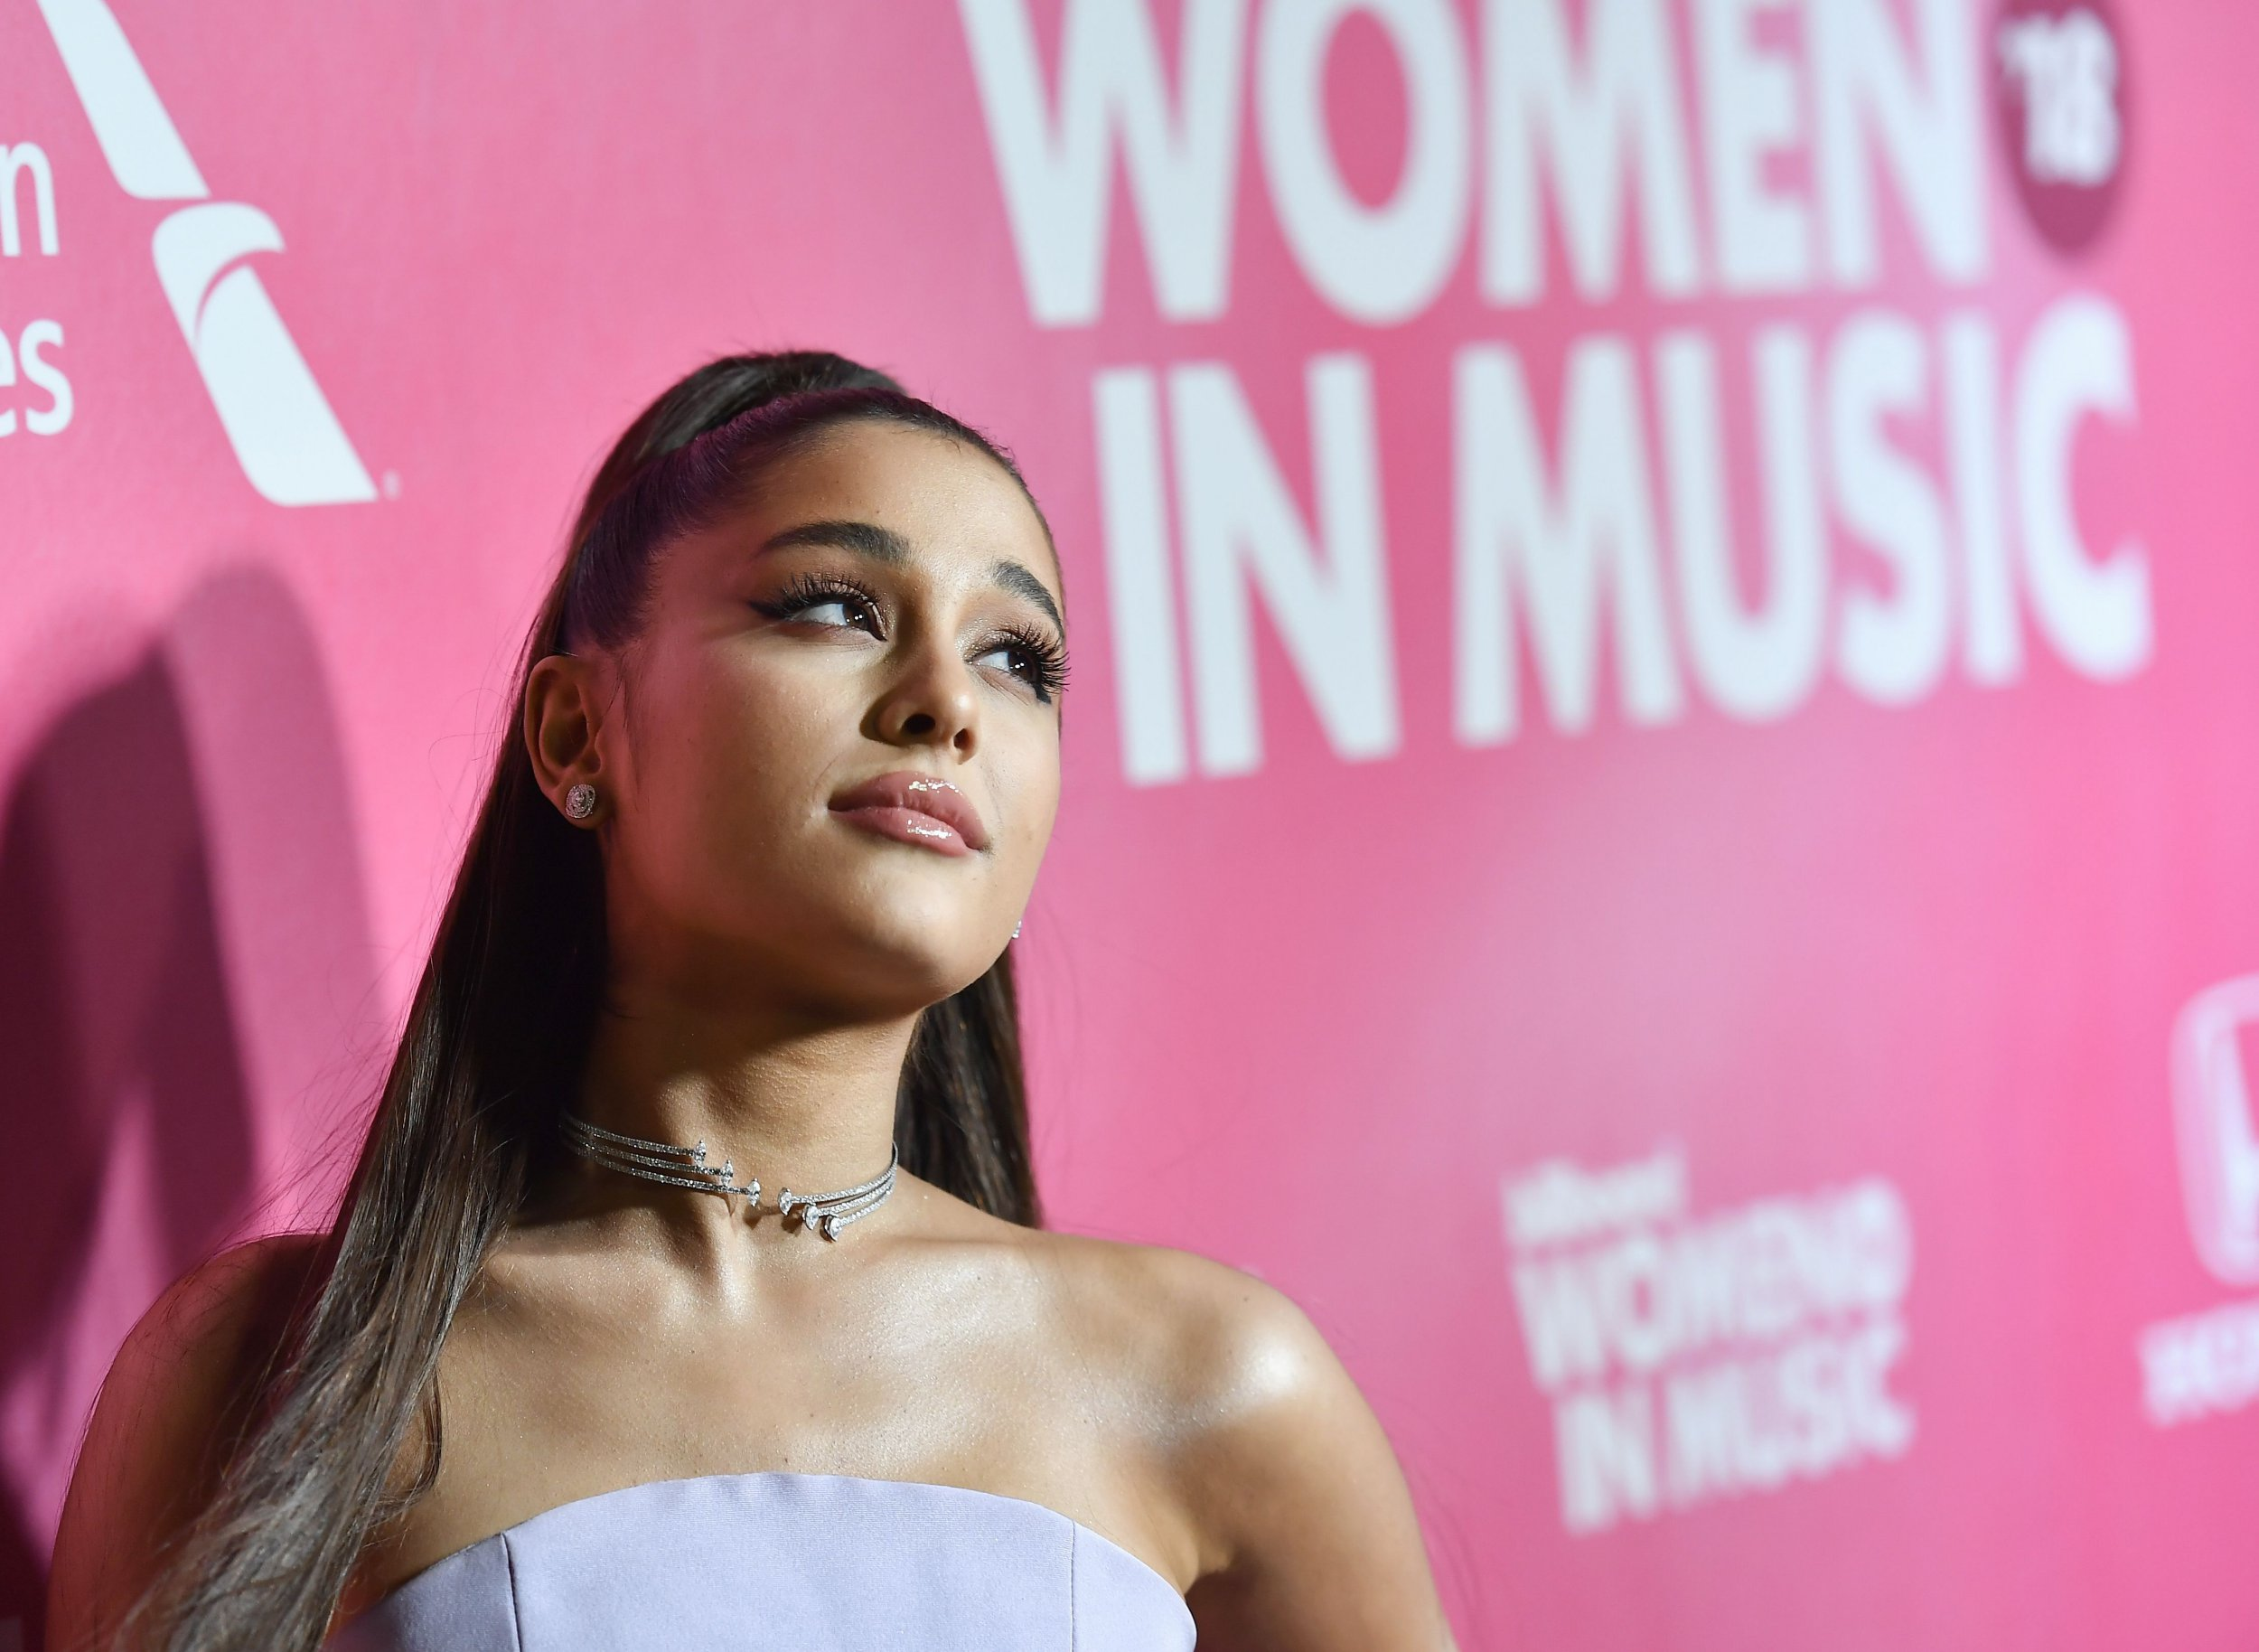 "(FILES) In this file photo taken on December 6, 2018 US singer/songwriter Ariana Grande attends Billboard's 13th Annual Women In Music event at Pier 36 in New York City. - Pop princess Ariana Grande is the first act in more than 50 years to claim simultaneously the top three spots on the US singles chart, industry tracker Billboard said February 18, 2019. The 25-year-old star is the second act in the Billboard Hot 100 chart's six-decade history to accomplish the feat, after The Beatles in 1964.Grande's ""7 Rings,"" ""Break Up With Your Girlfriend, I'm Bored"" and ""Thank U, Next"" monopolized the top hits chart following her fifth album's debut on Billboard's top albums tally. (Photo by Angela Weiss / AFP)ANGELA WEISS/AFP/Getty Images"